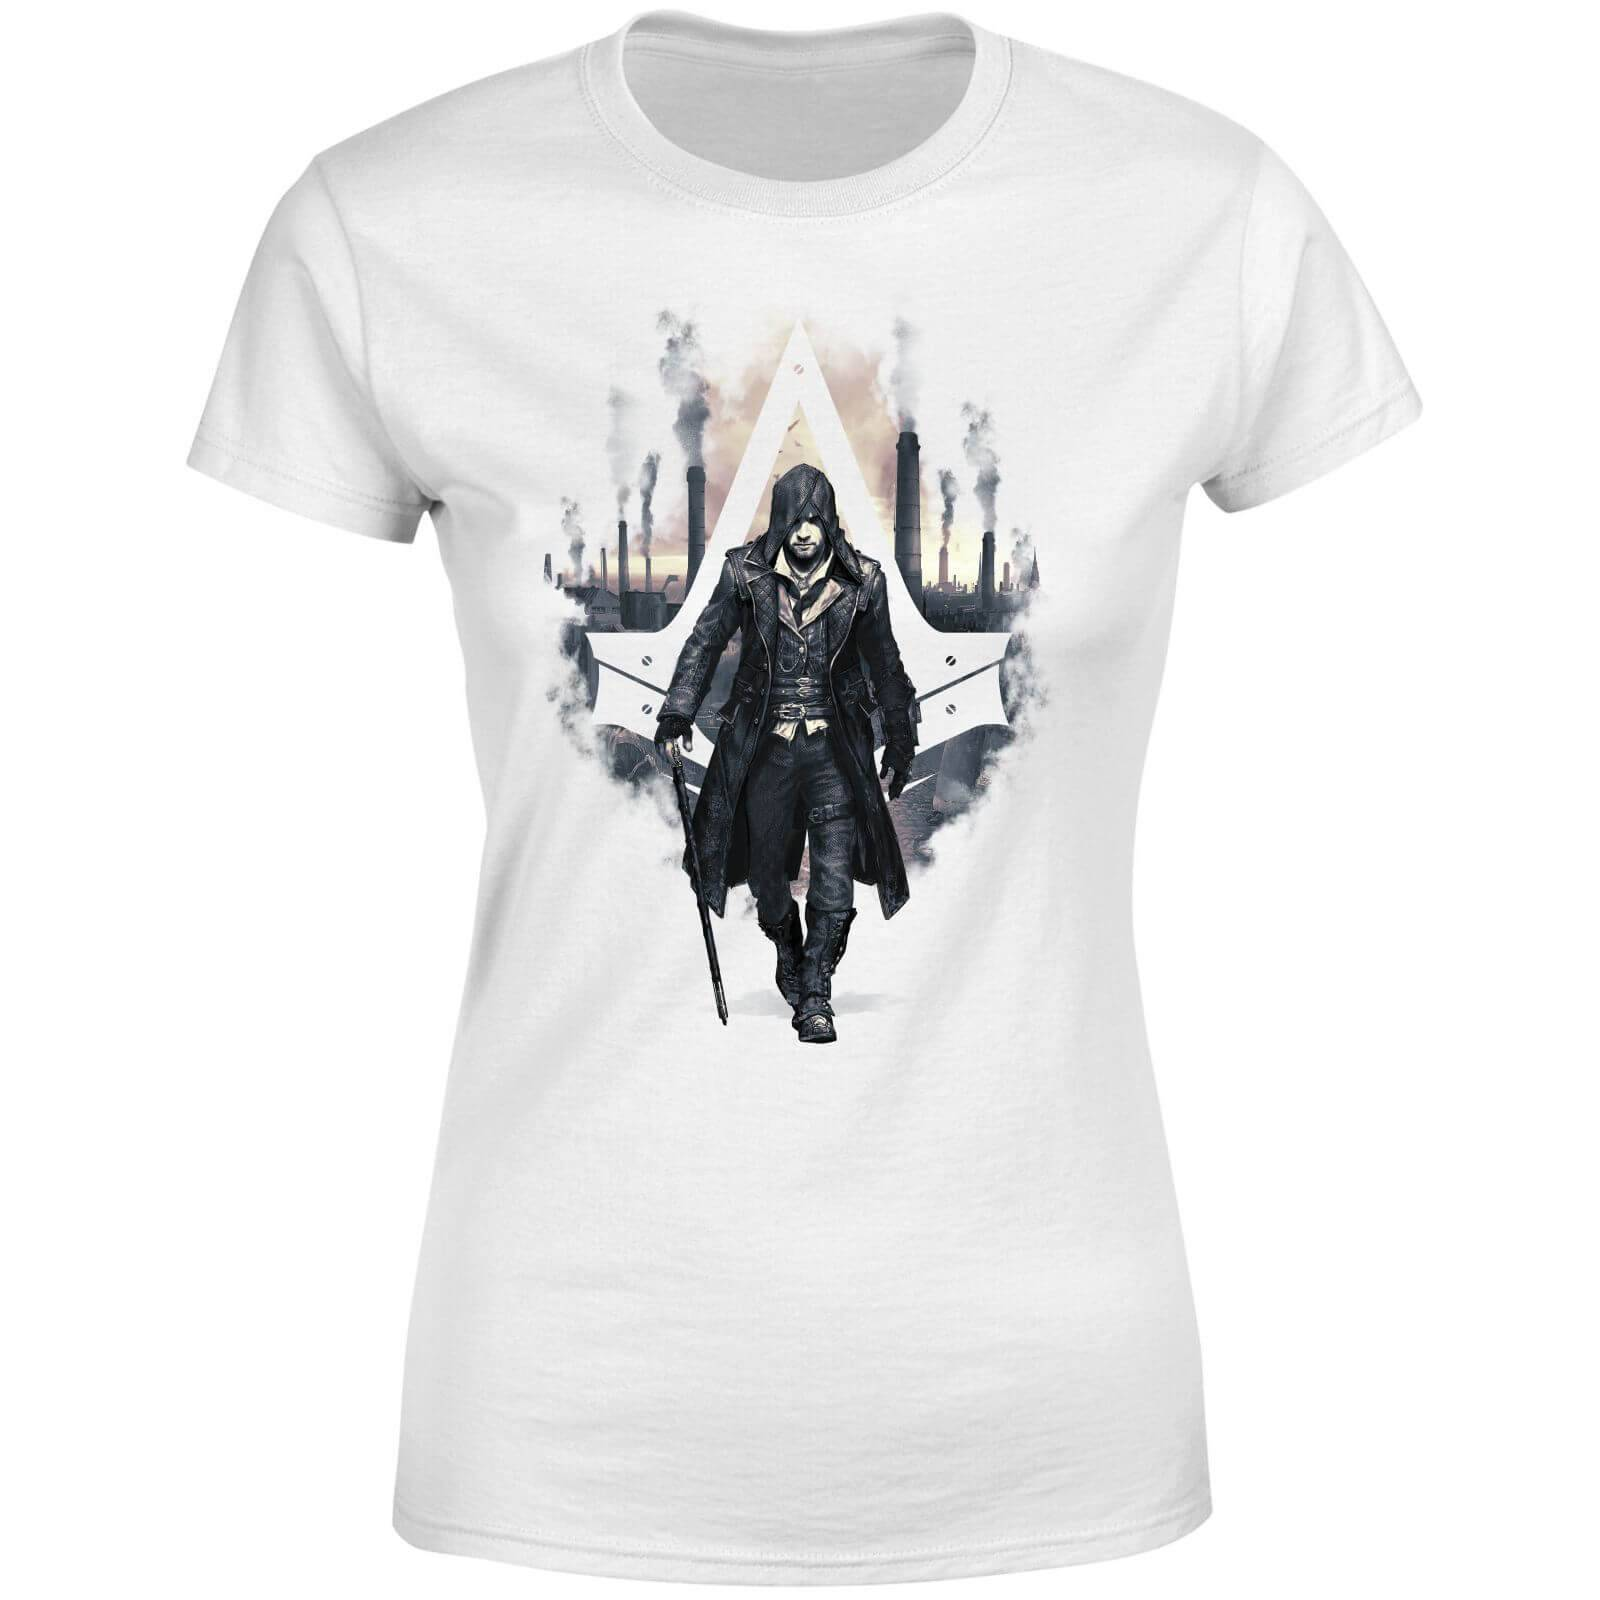 Assassin's Creed T-Shirt Femme London Skyline Assassin's Creed Syndicate - Blanc - S - Blanc